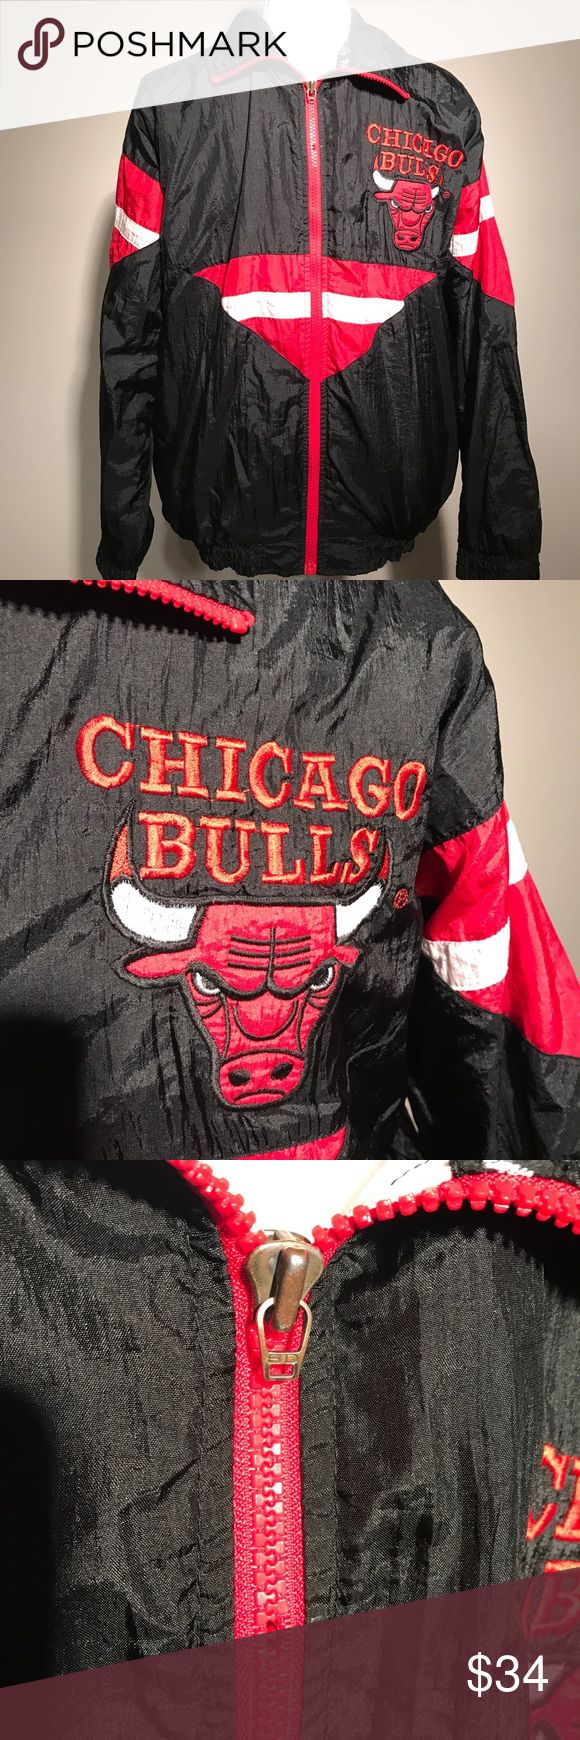 Vintage Chicago Bulls Team Athletic Jacket S M Item is in good condition. Zipper is missing a couple of teeth but still zips up and down. Thanks for looking Jackets & Coats Lightweight & Shirt Jackets